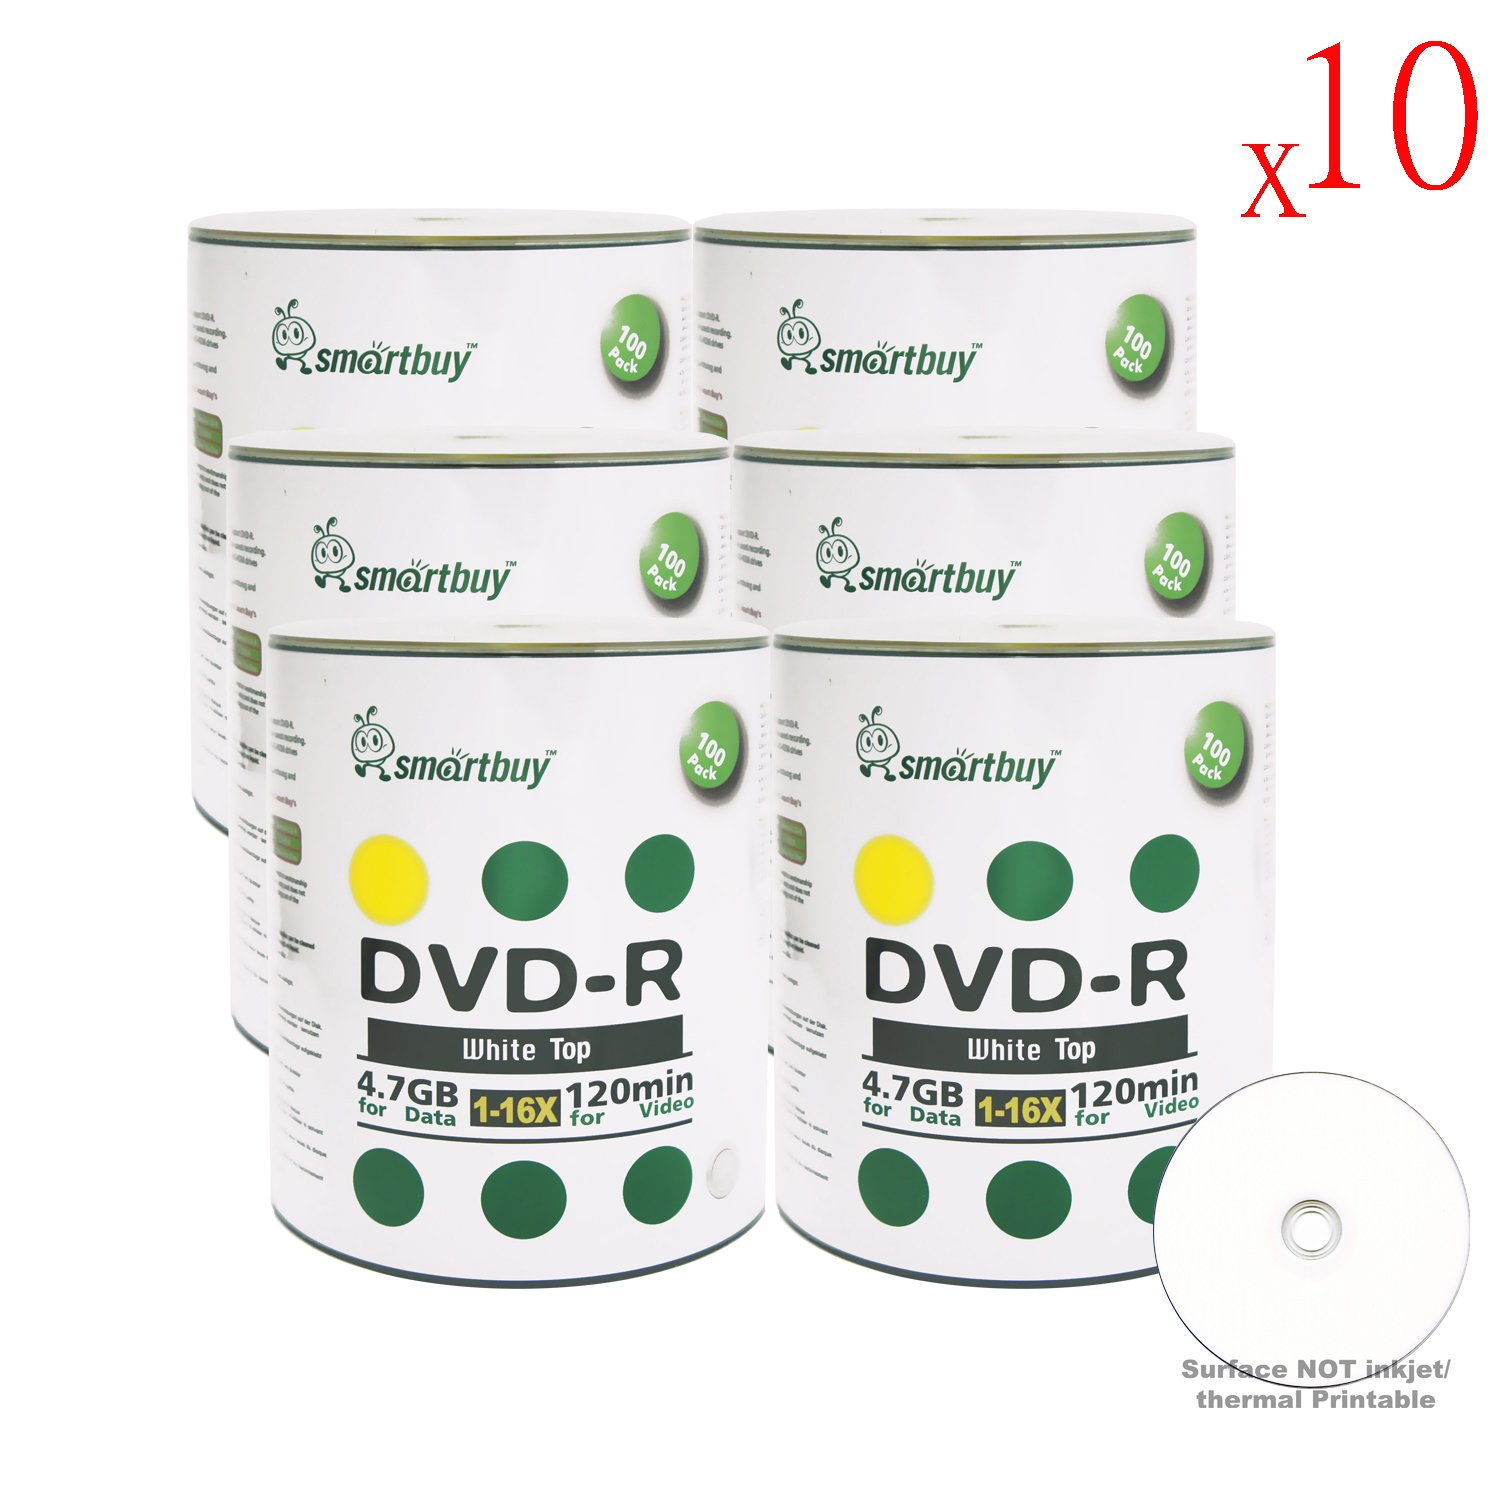 Smartbuy 4.7gb/120min 16x DVD-R White Top Blank Data Video Recordable Media Disc (6000-Disc)